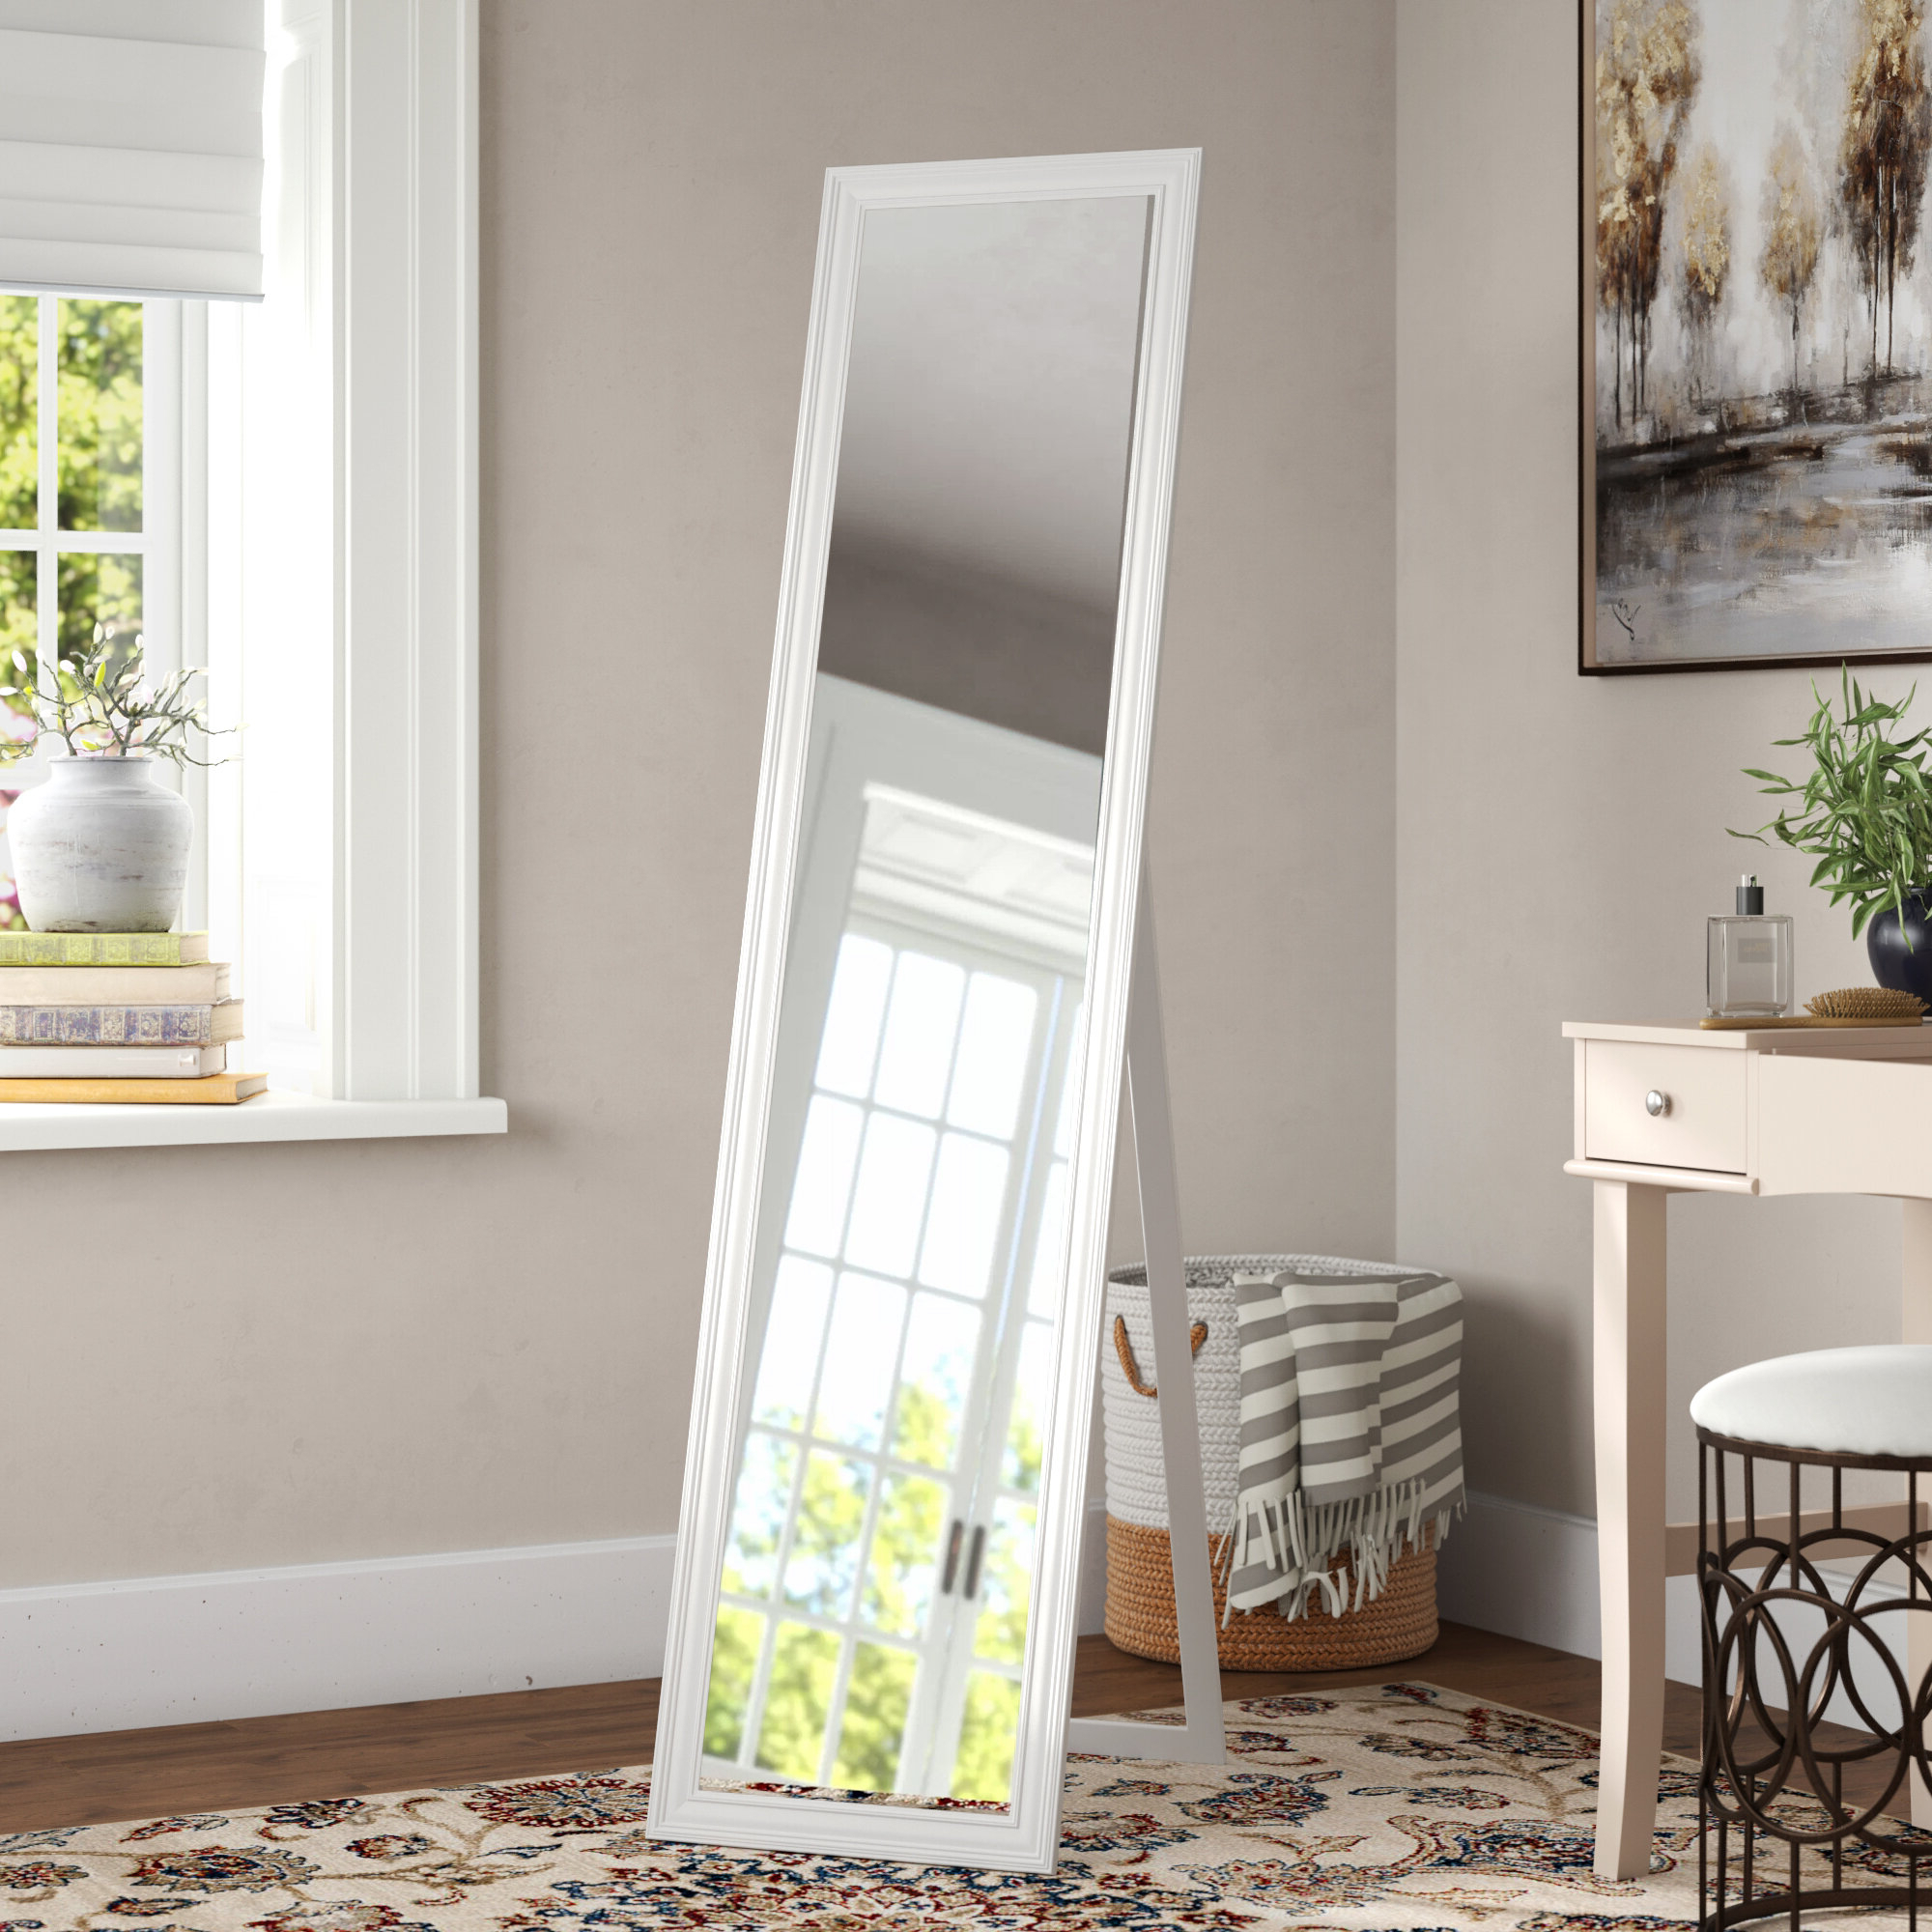 2020 Stand Up Wall Mirrors For Rectangle Rubberwood Standing Wall Mirror (View 5 of 20)